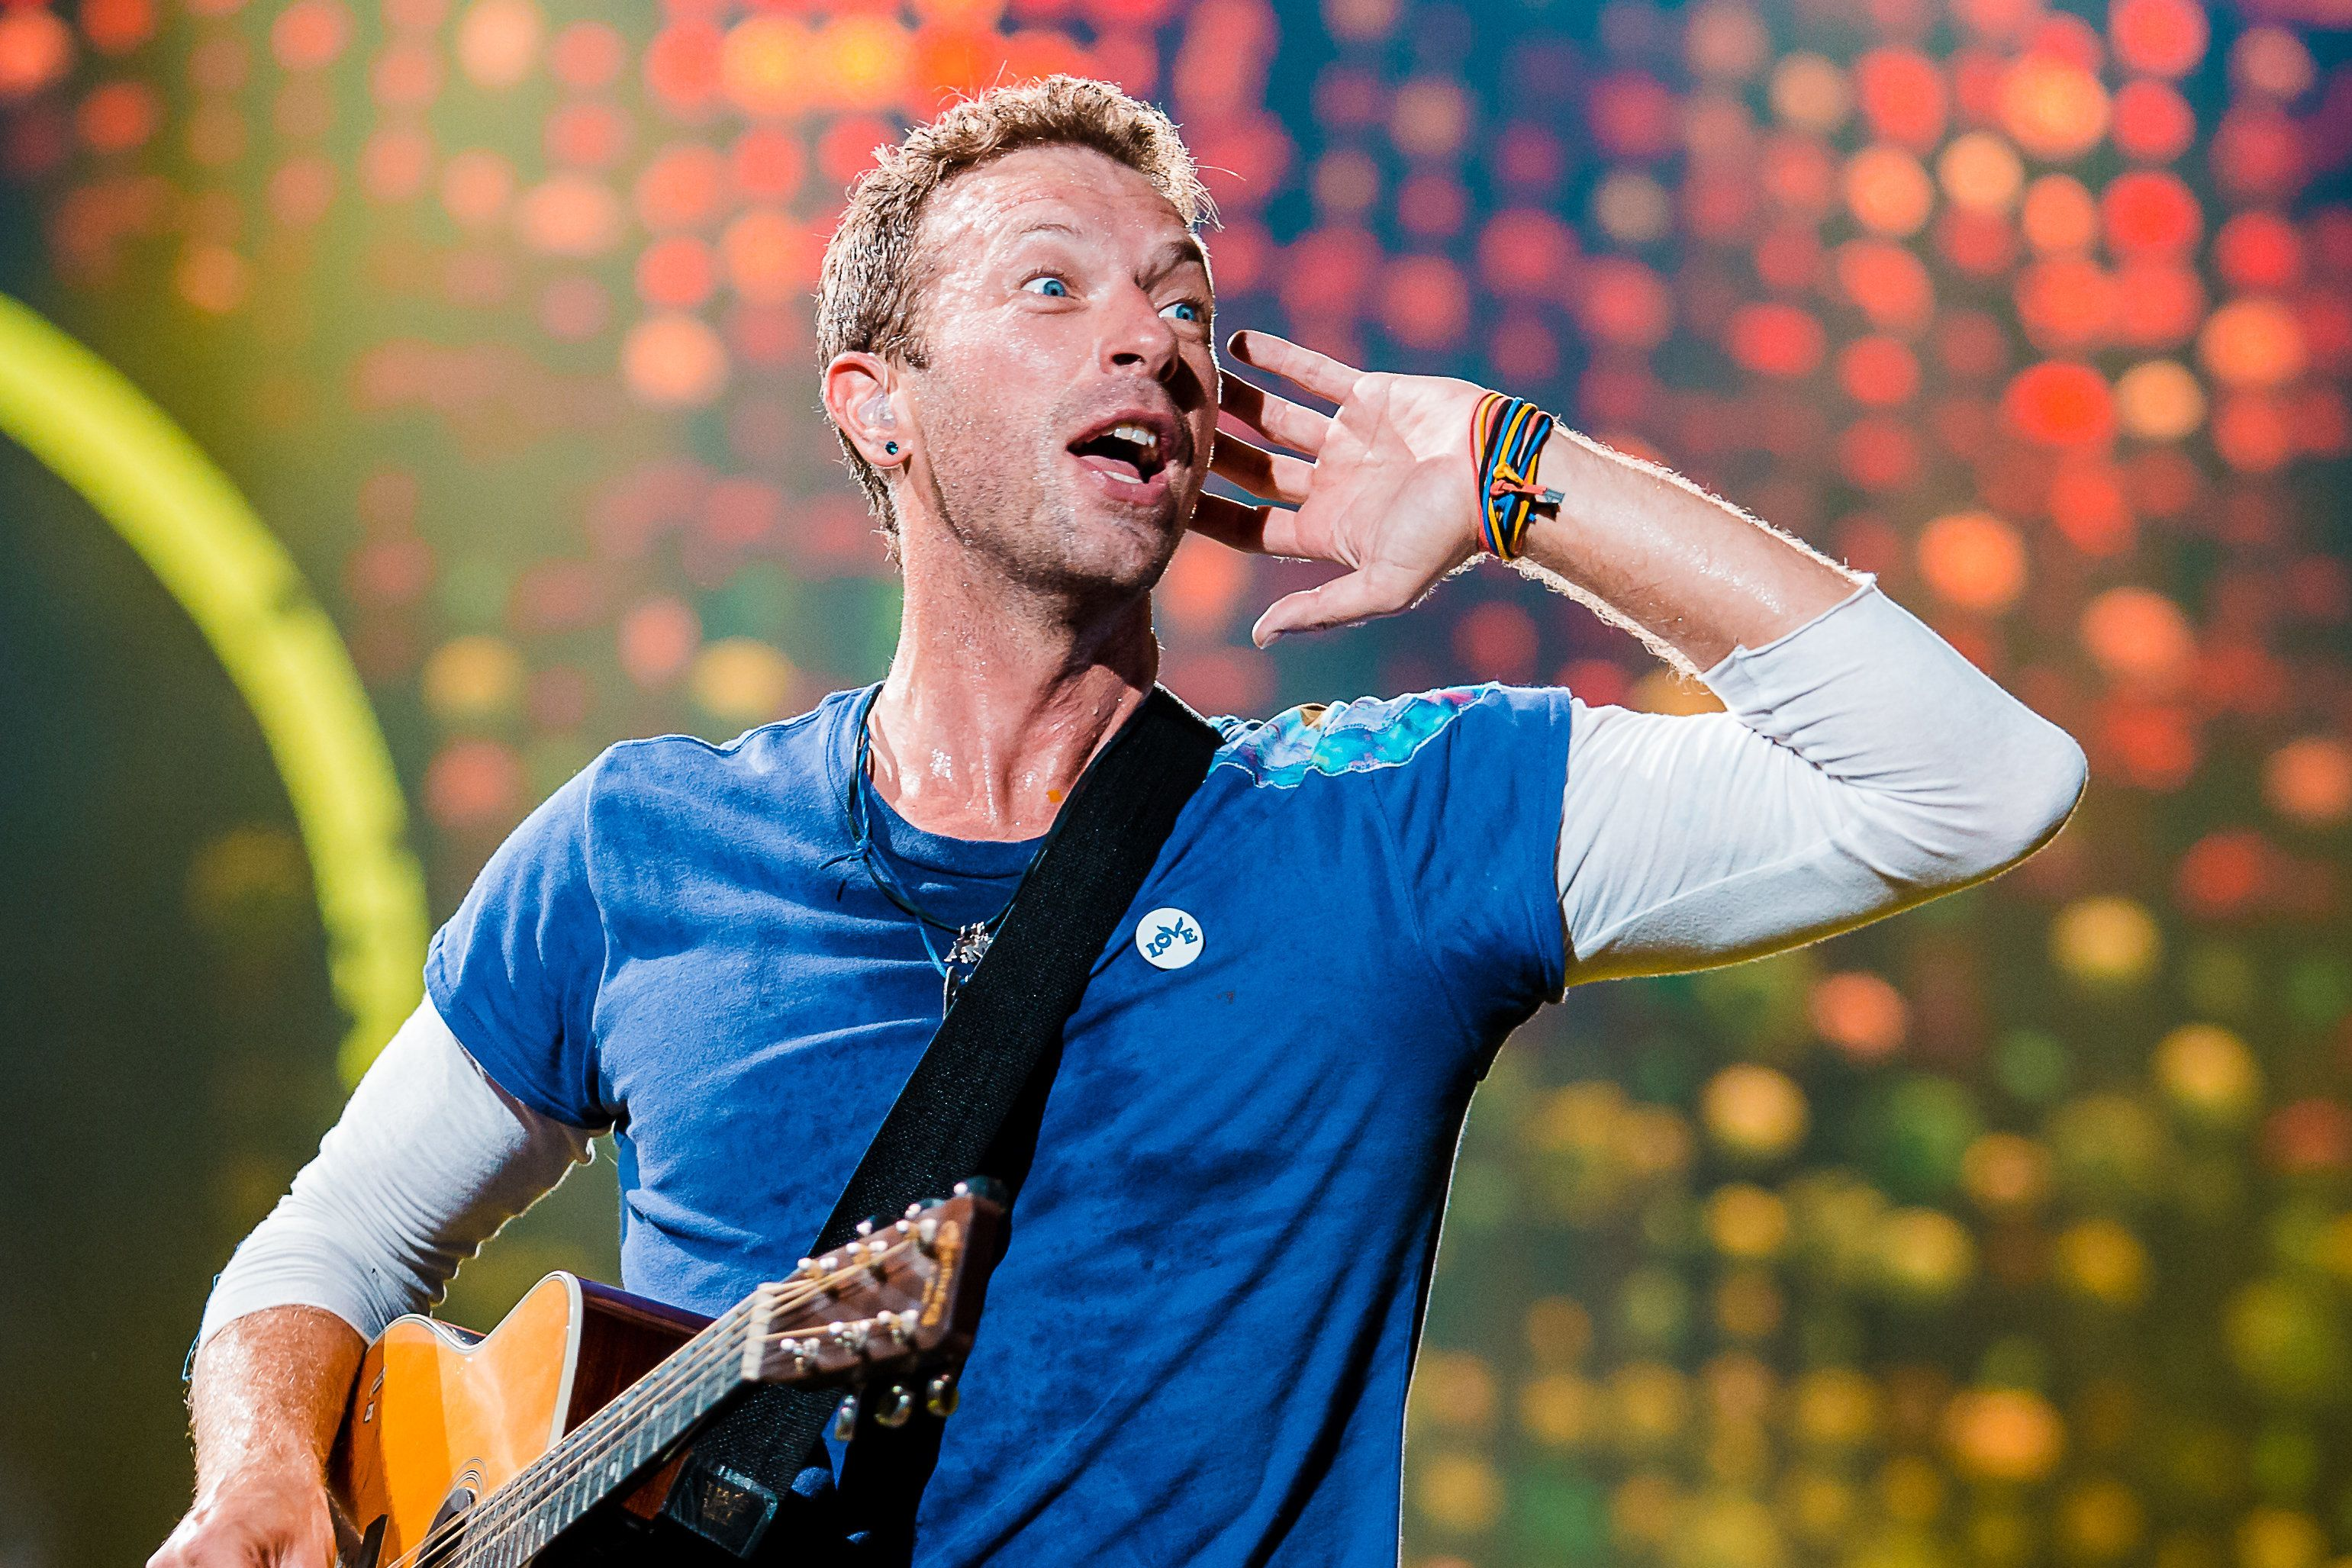 Coldplay's Chris Martin Backs Fight For Law To Boost Parental Leave For